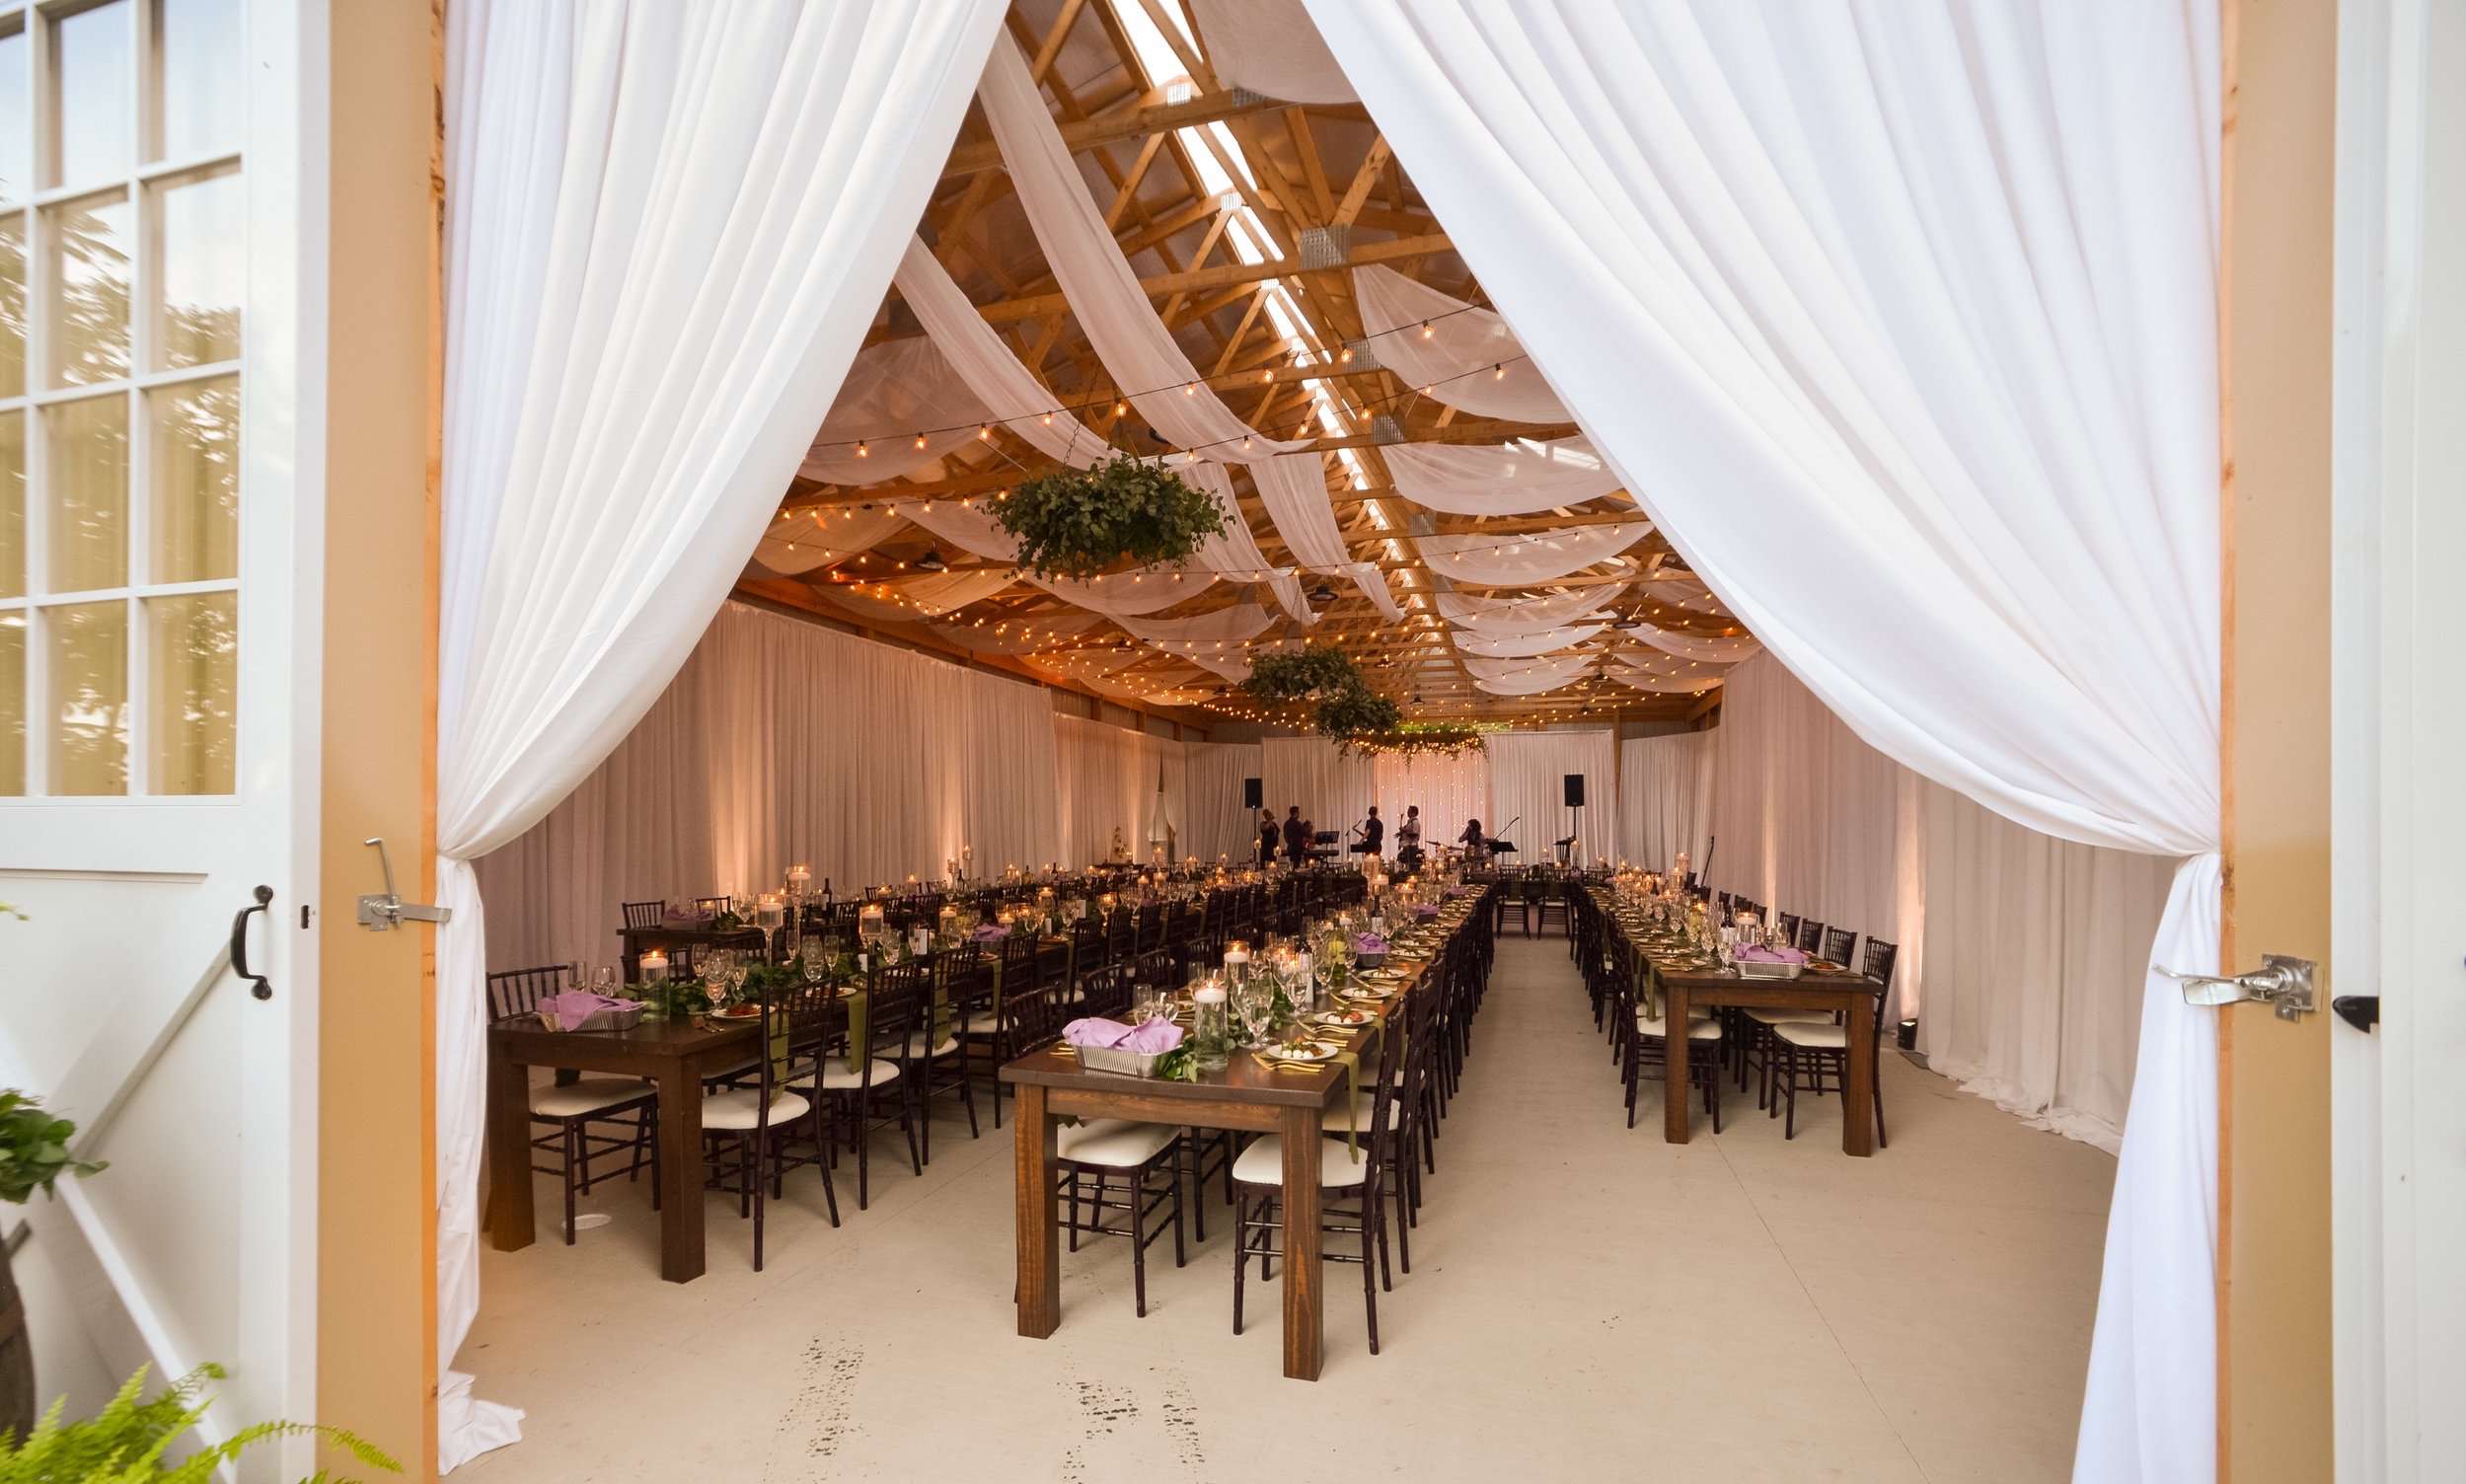 Rustic wedding ceremony in Western Pennsylvania - after barn decorations. Exhale Events | Pittsburgh Wedding Planners